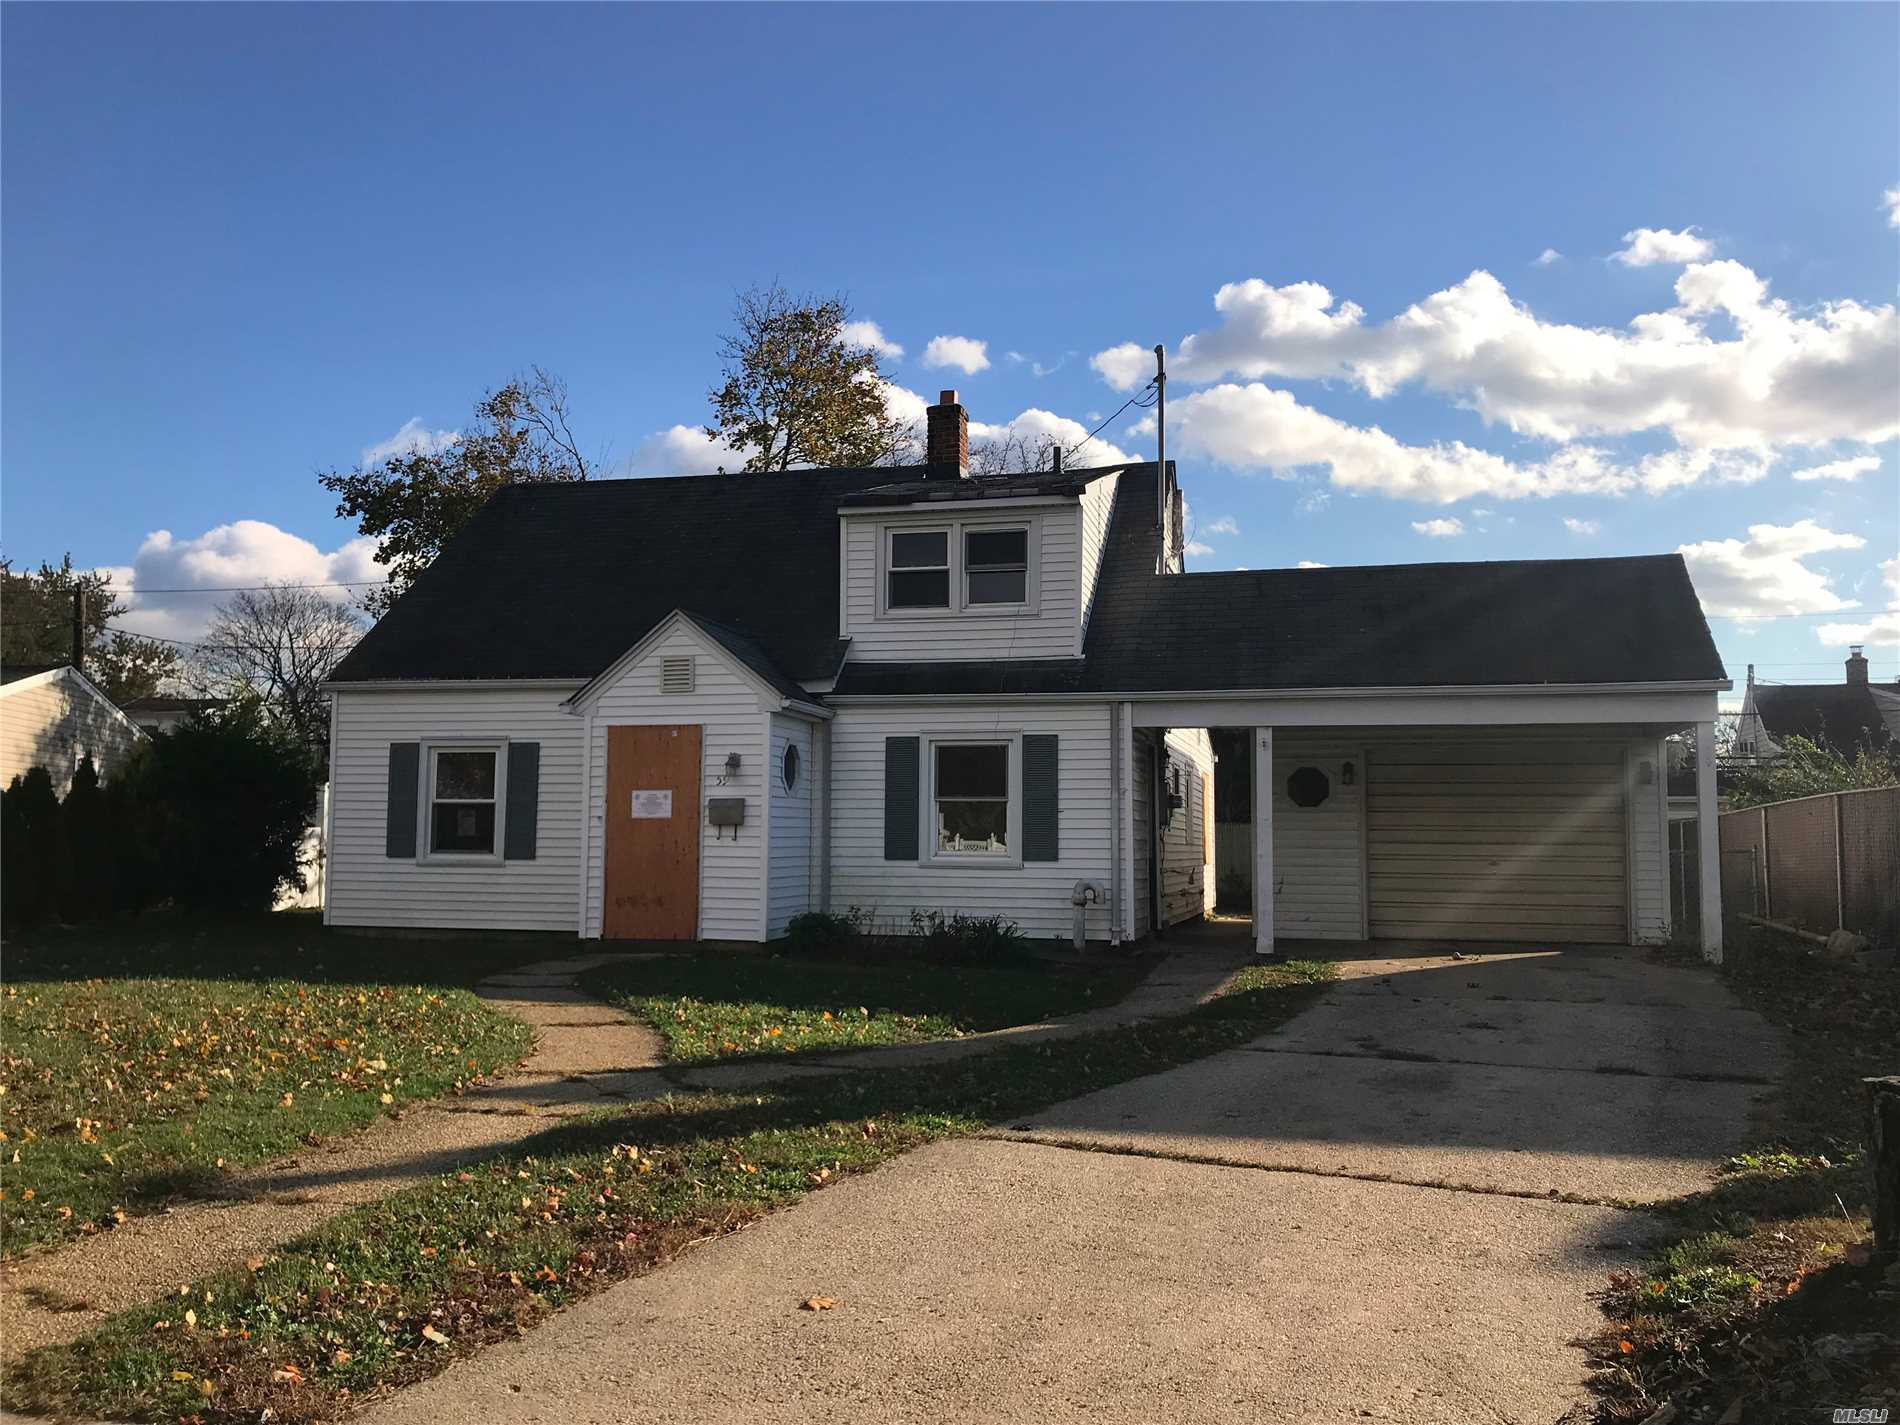 Phenomenal Single Family Opportunity In Levittown. Bank Owned Property, Ready To Go. Fully Cleaned Out Cape On A Quiet Residential Block; 3 Bedroom Duplex With 2 Full Baths; 1 Car Garage. Near Hempstead Turnpike; All Parkways; Shops; Etc.